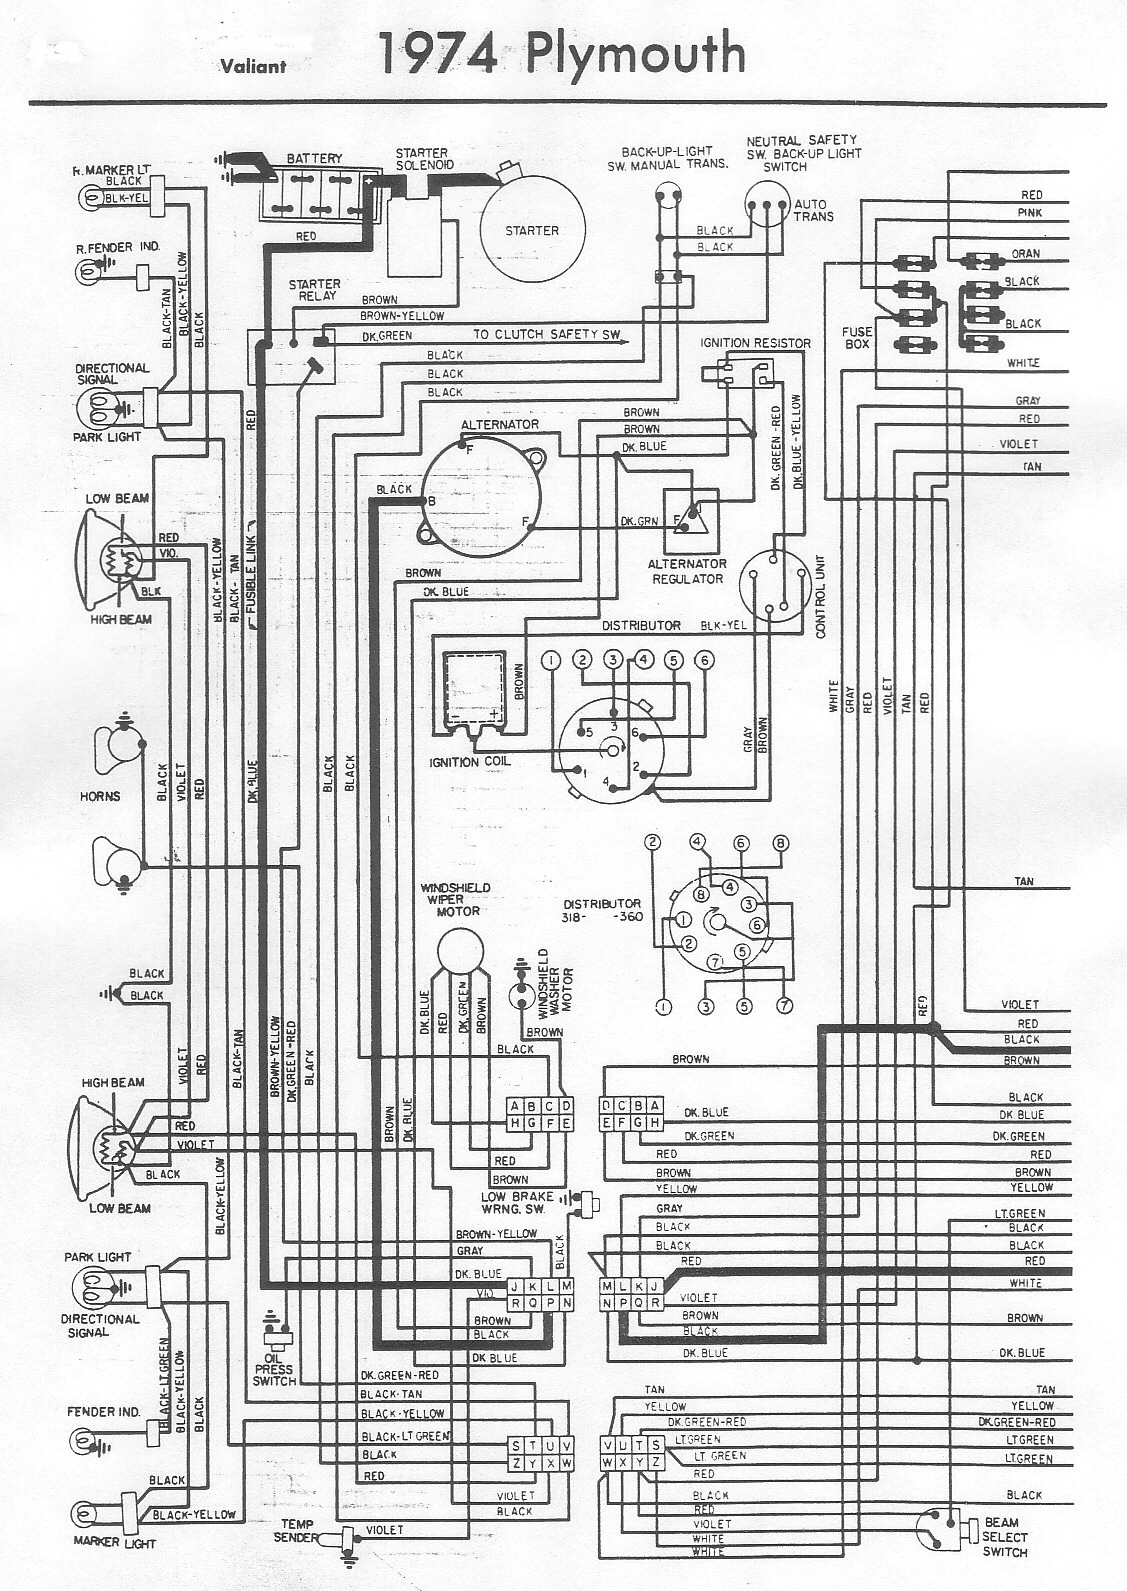 1973 Plymouth Wiring Diagrams